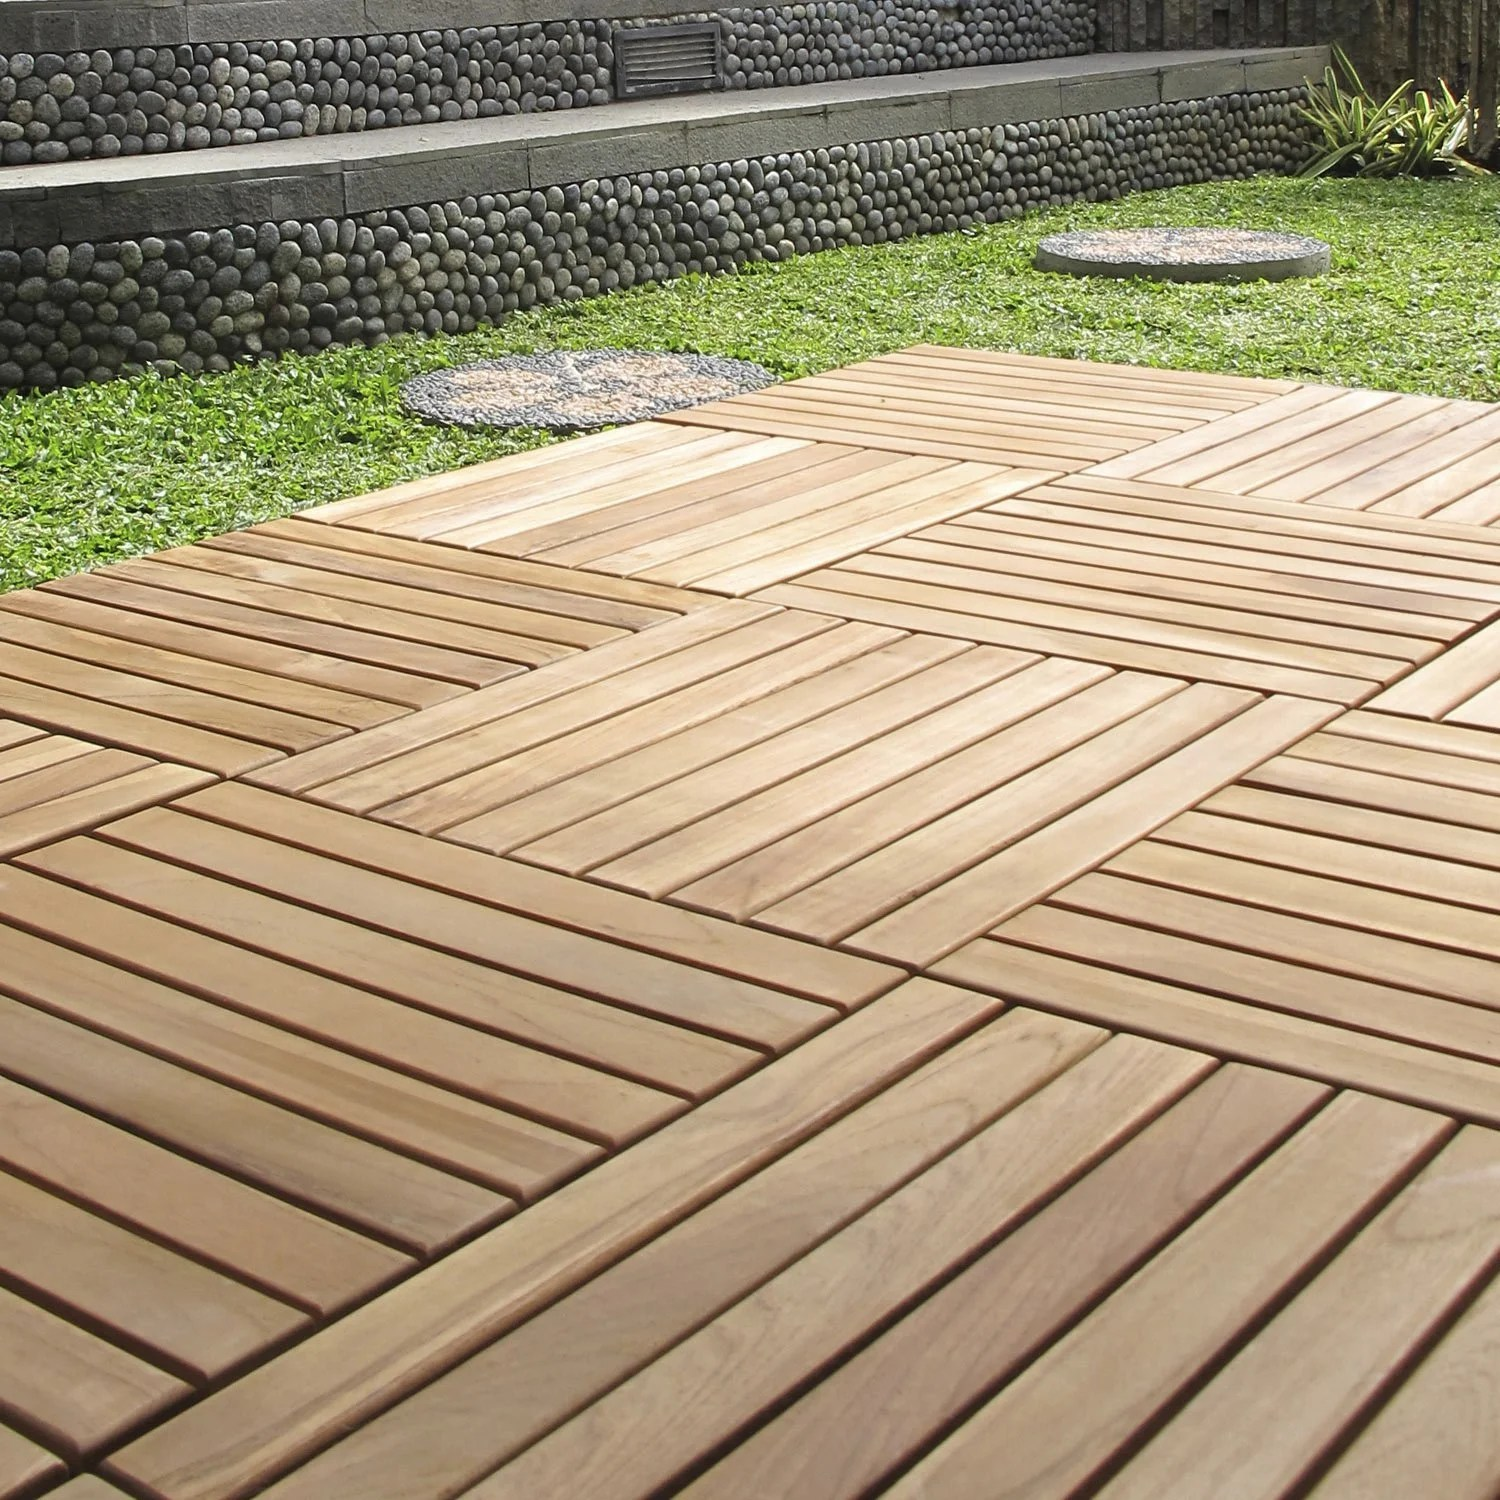 Terrasse Bois Clipsable Dalle Clipsable Bois Marron Naturel Miel L 40 X L 40